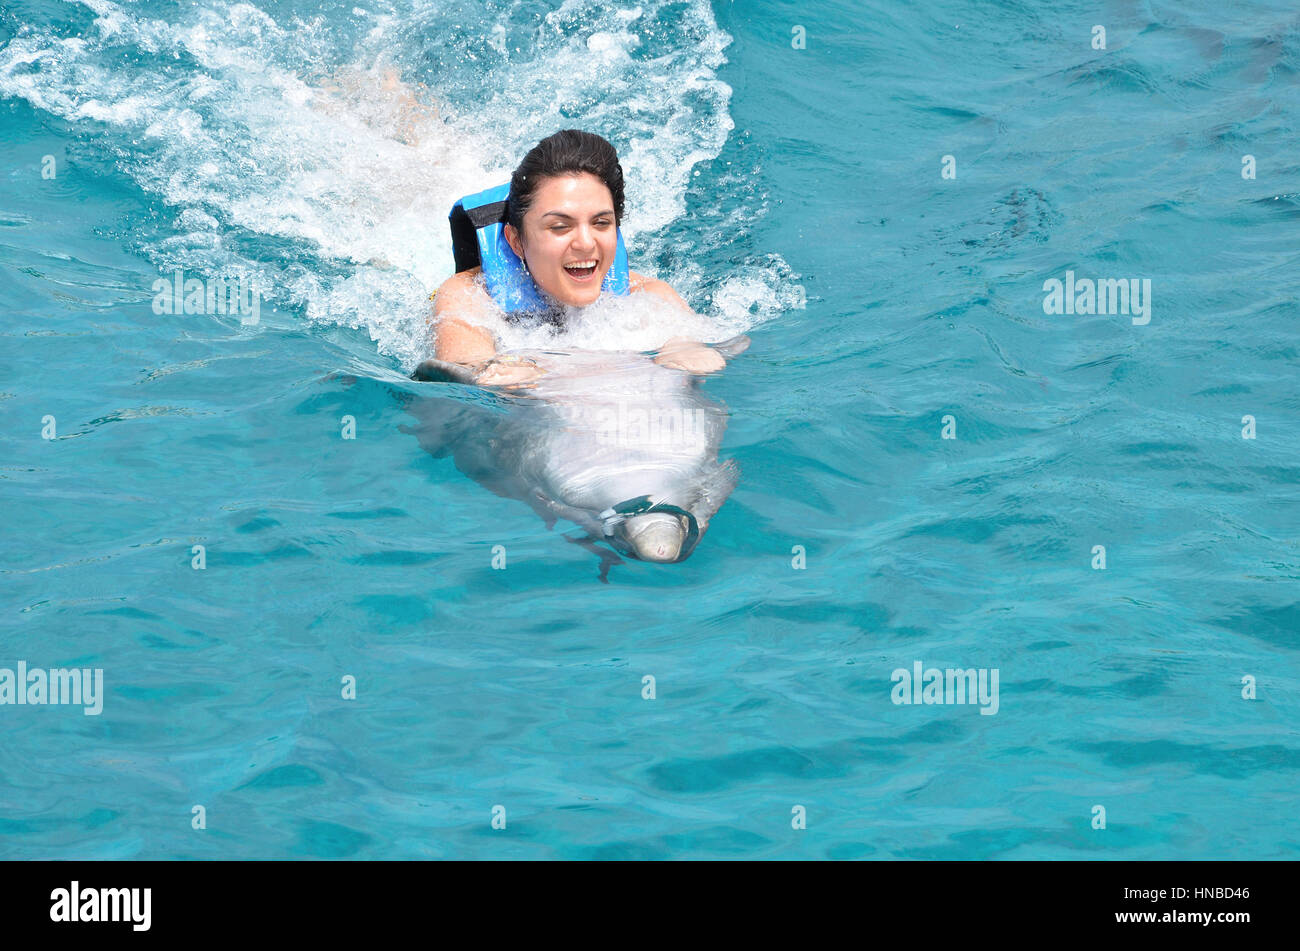 dolphin ride therapy for young woman in pool Stock Photo